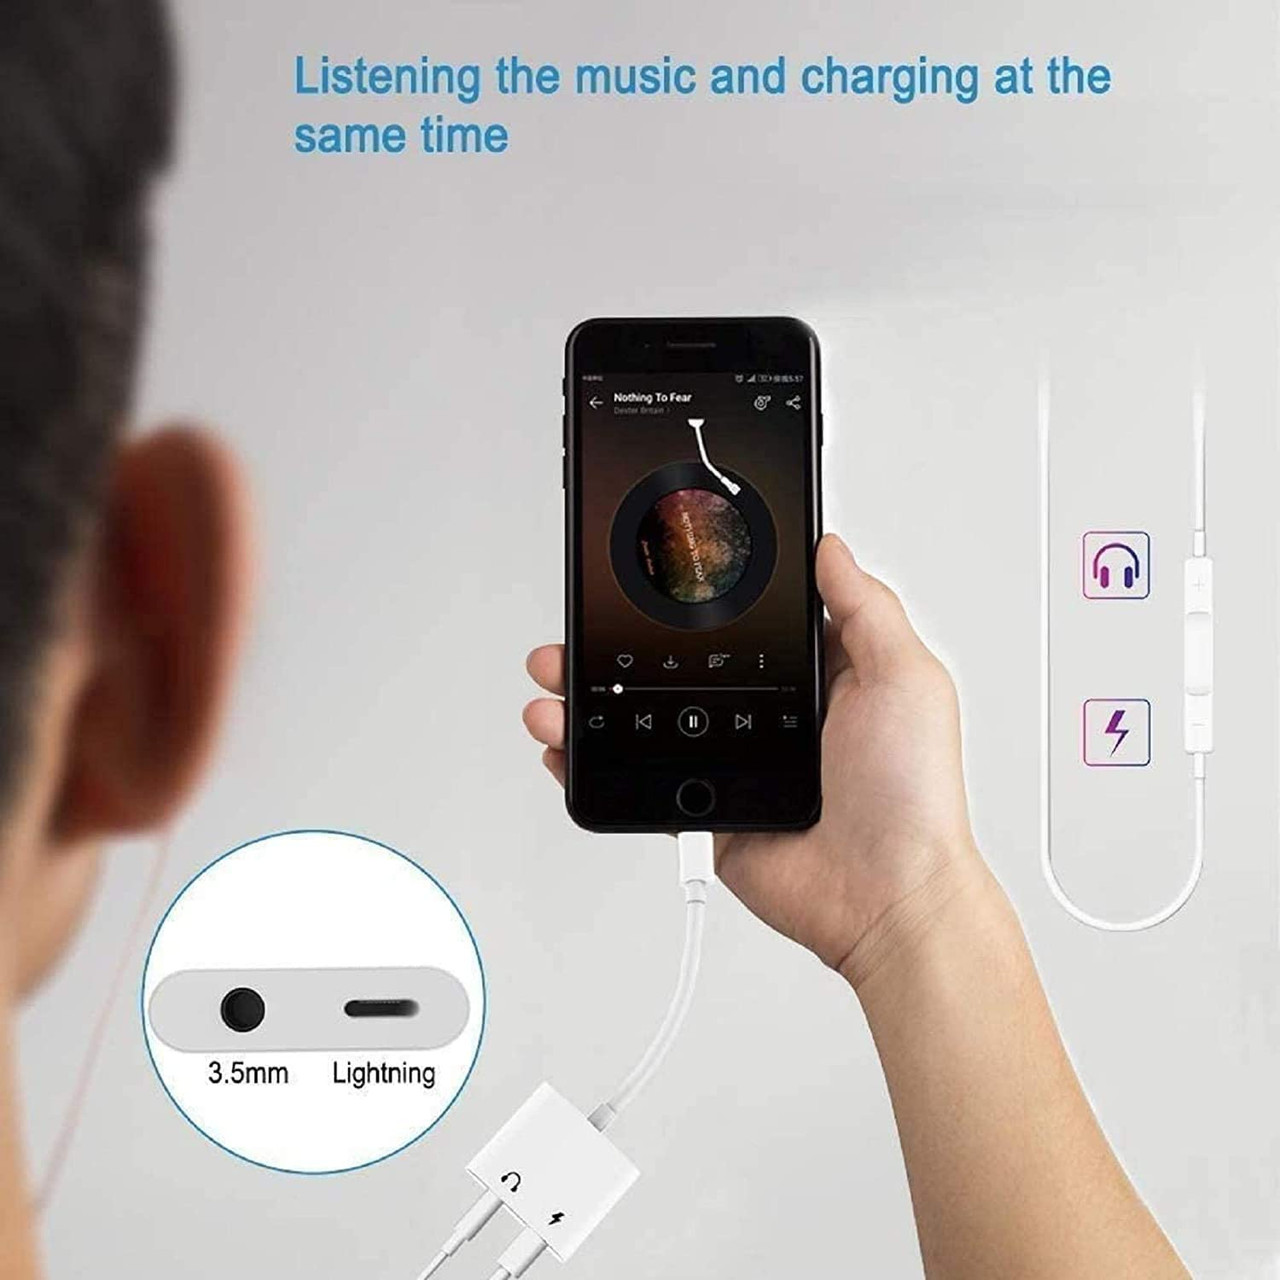 Headphone Adapter for iPhone, 2 in 1 Lightning to 3.5mm AUX Audio + Charger